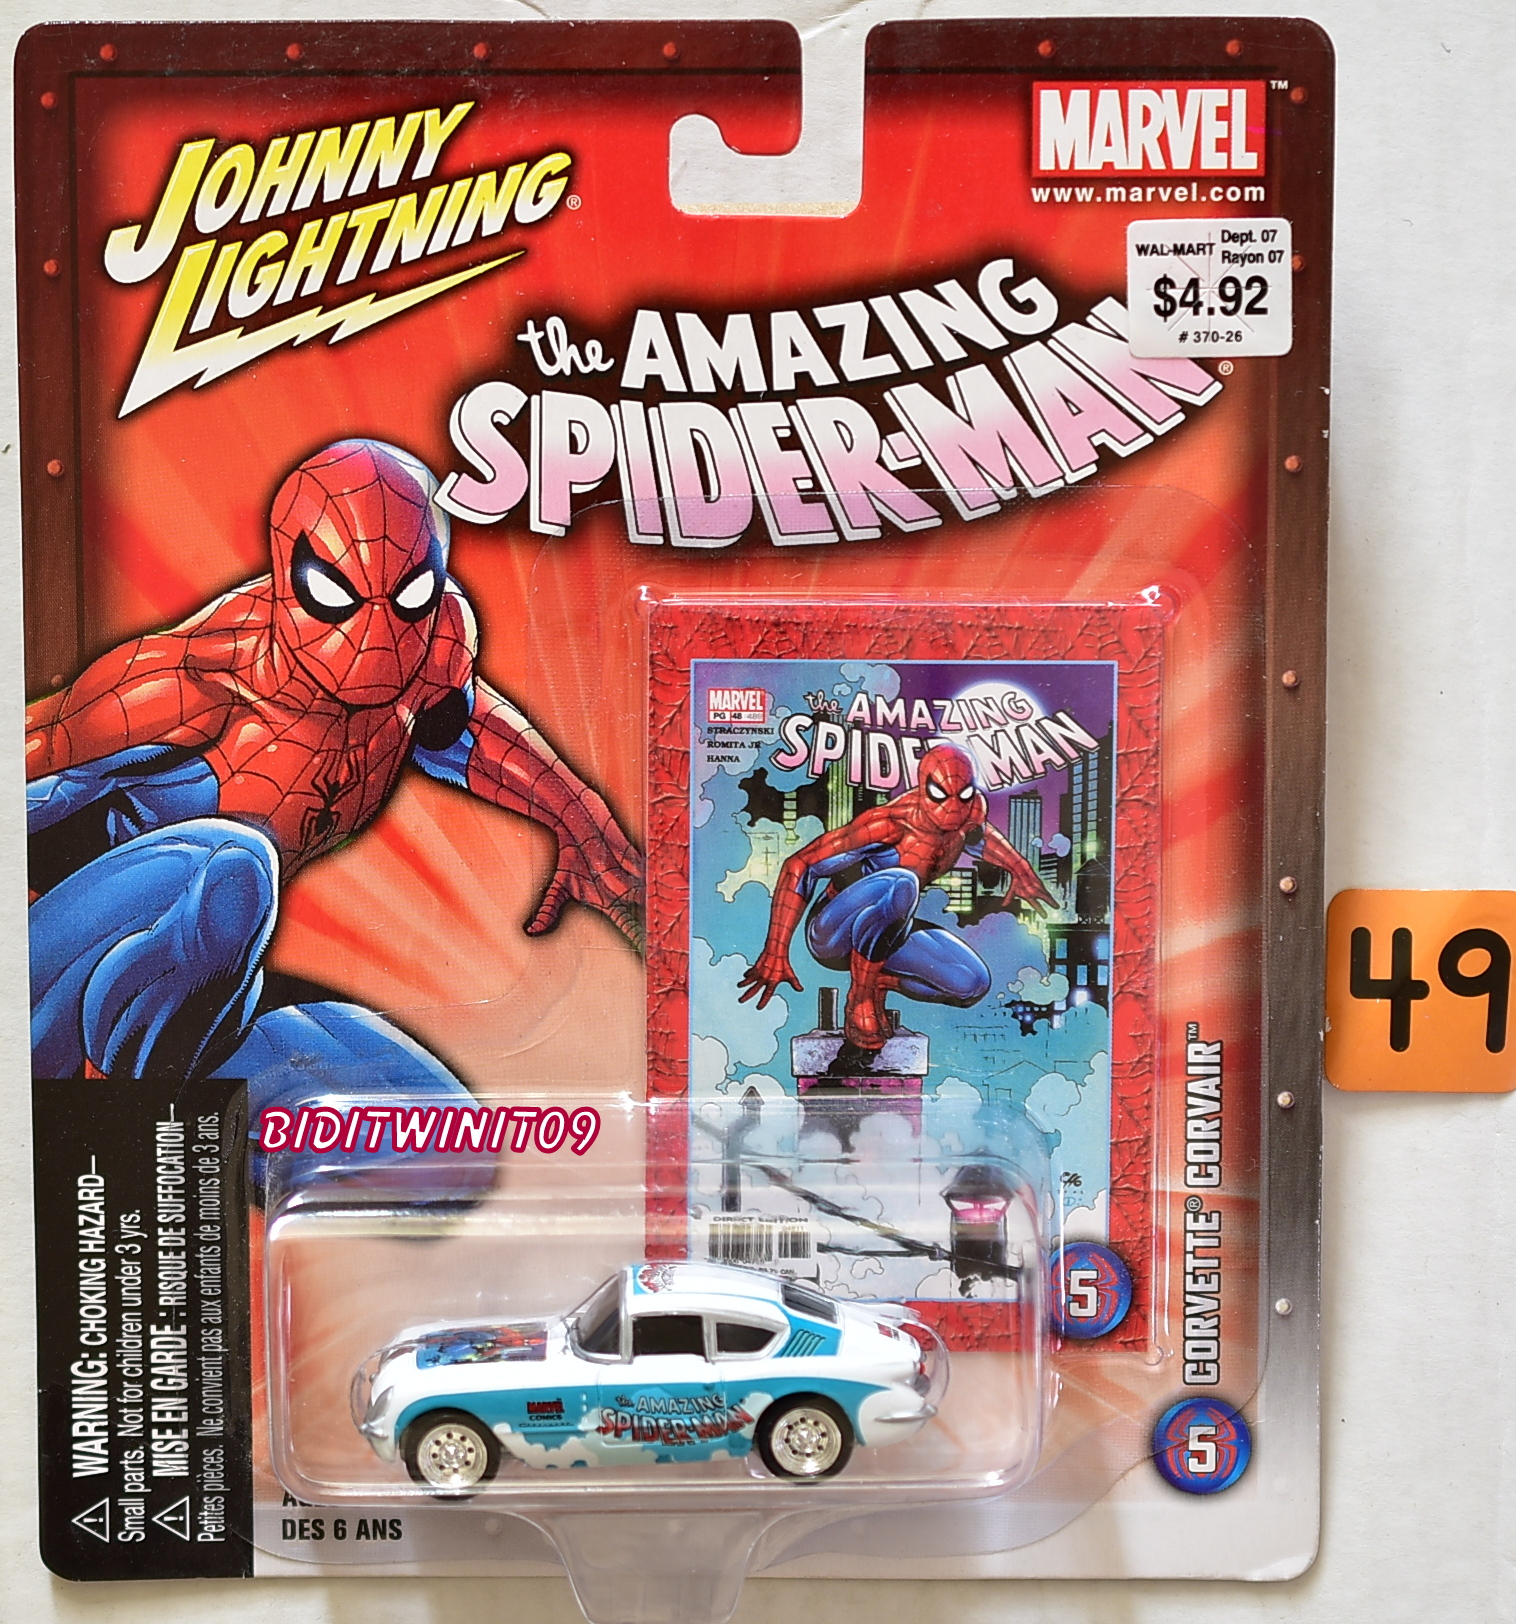 JOHNNY LIGHTNING MARVEL THE AMAZING SPIDER-MAN CORVETTE CORVAIR #5